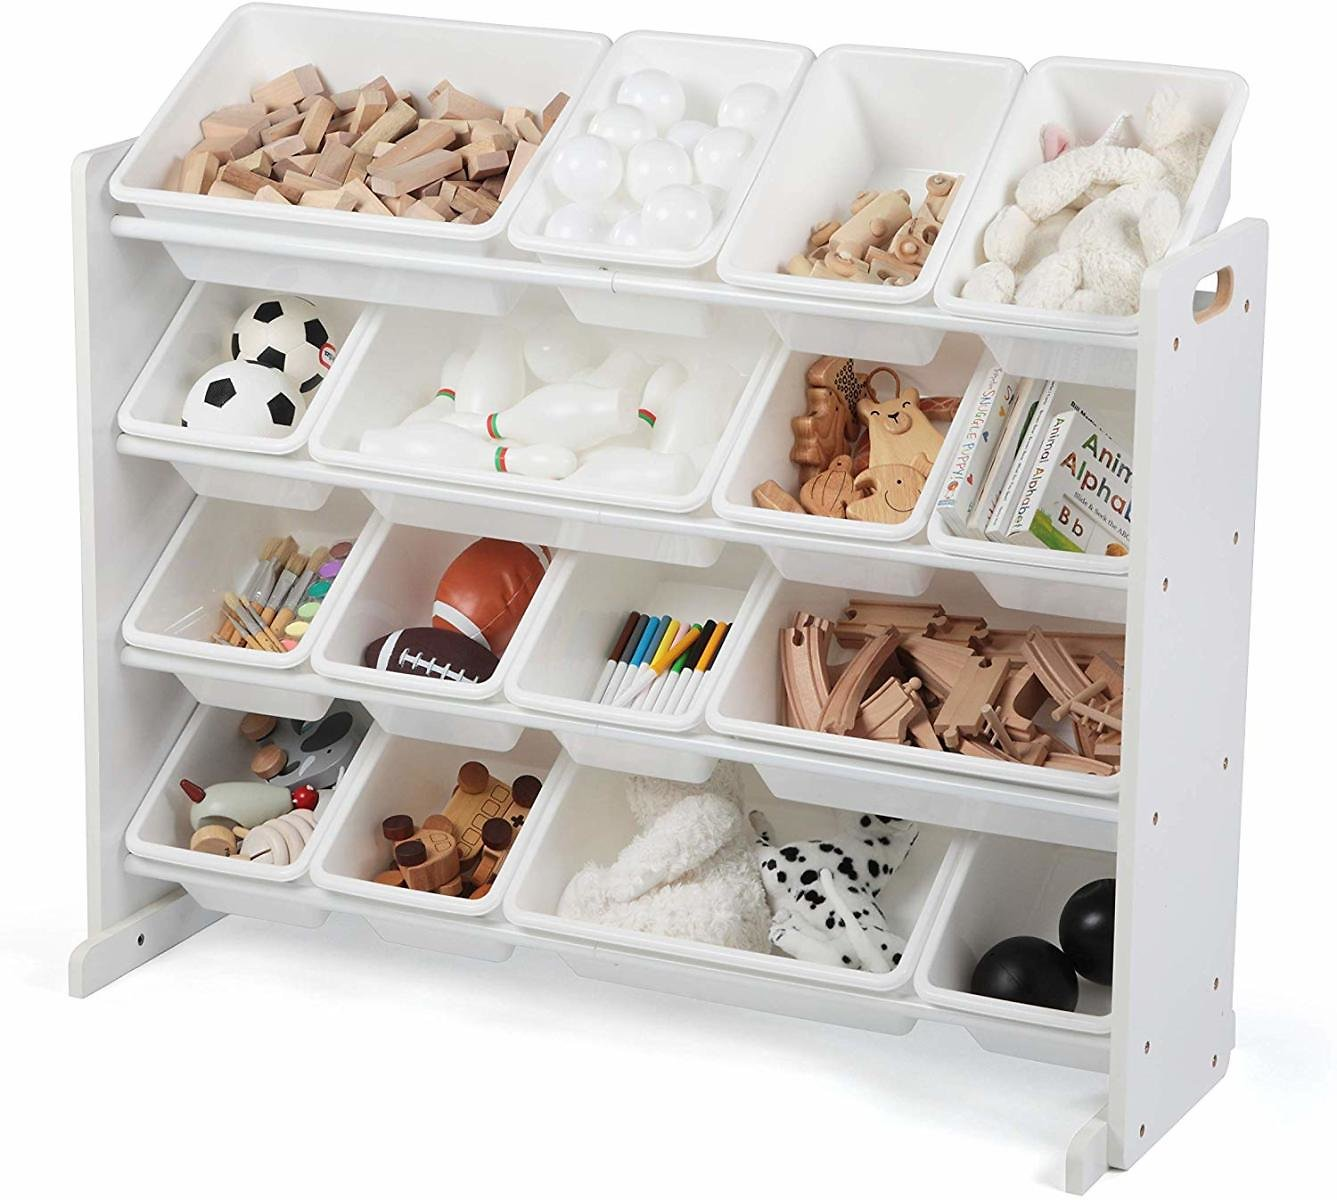 Tot Tutors WO135 Extra-Large, Supersized Toy Storage Organizer (White, Cambridge Collection)